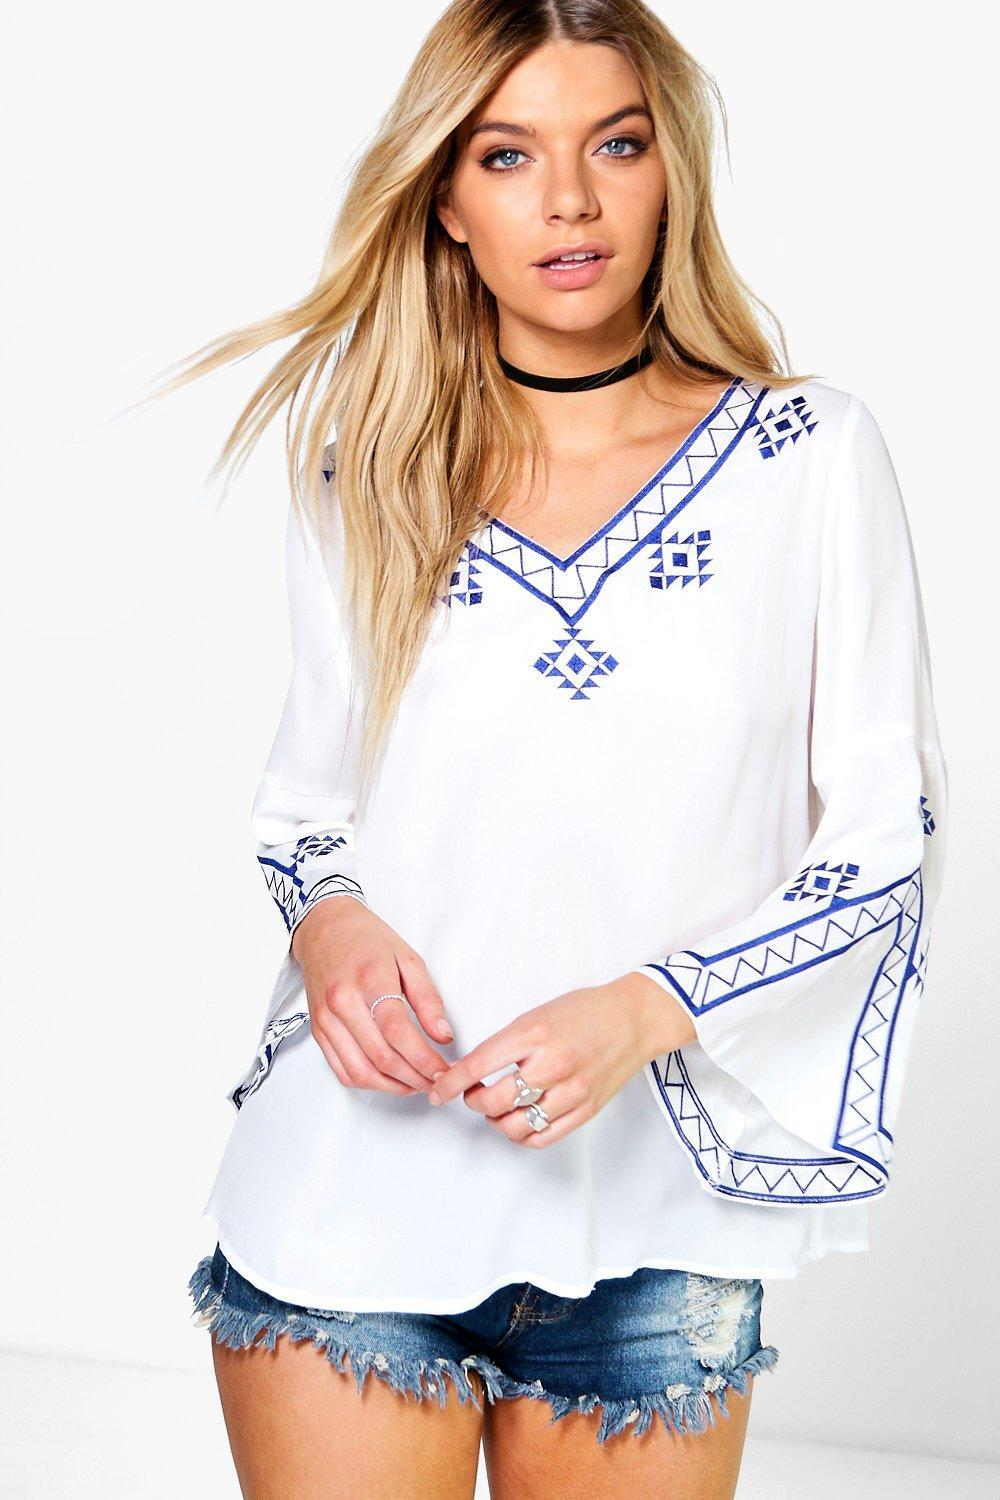 Embroidered Flute Sleeve Blouse White - neckline: v-neck; style: blouse; predominant colour: white; secondary colour: royal blue; occasions: casual; length: standard; fibres: polyester/polyamide - 100%; fit: loose; sleeve length: long sleeve; sleeve style: standard; texture group: cotton feel fabrics; pattern type: fabric; pattern: patterned/print; embellishment: embroidered; multicoloured: multicoloured; season: s/s 2016; wardrobe: highlight